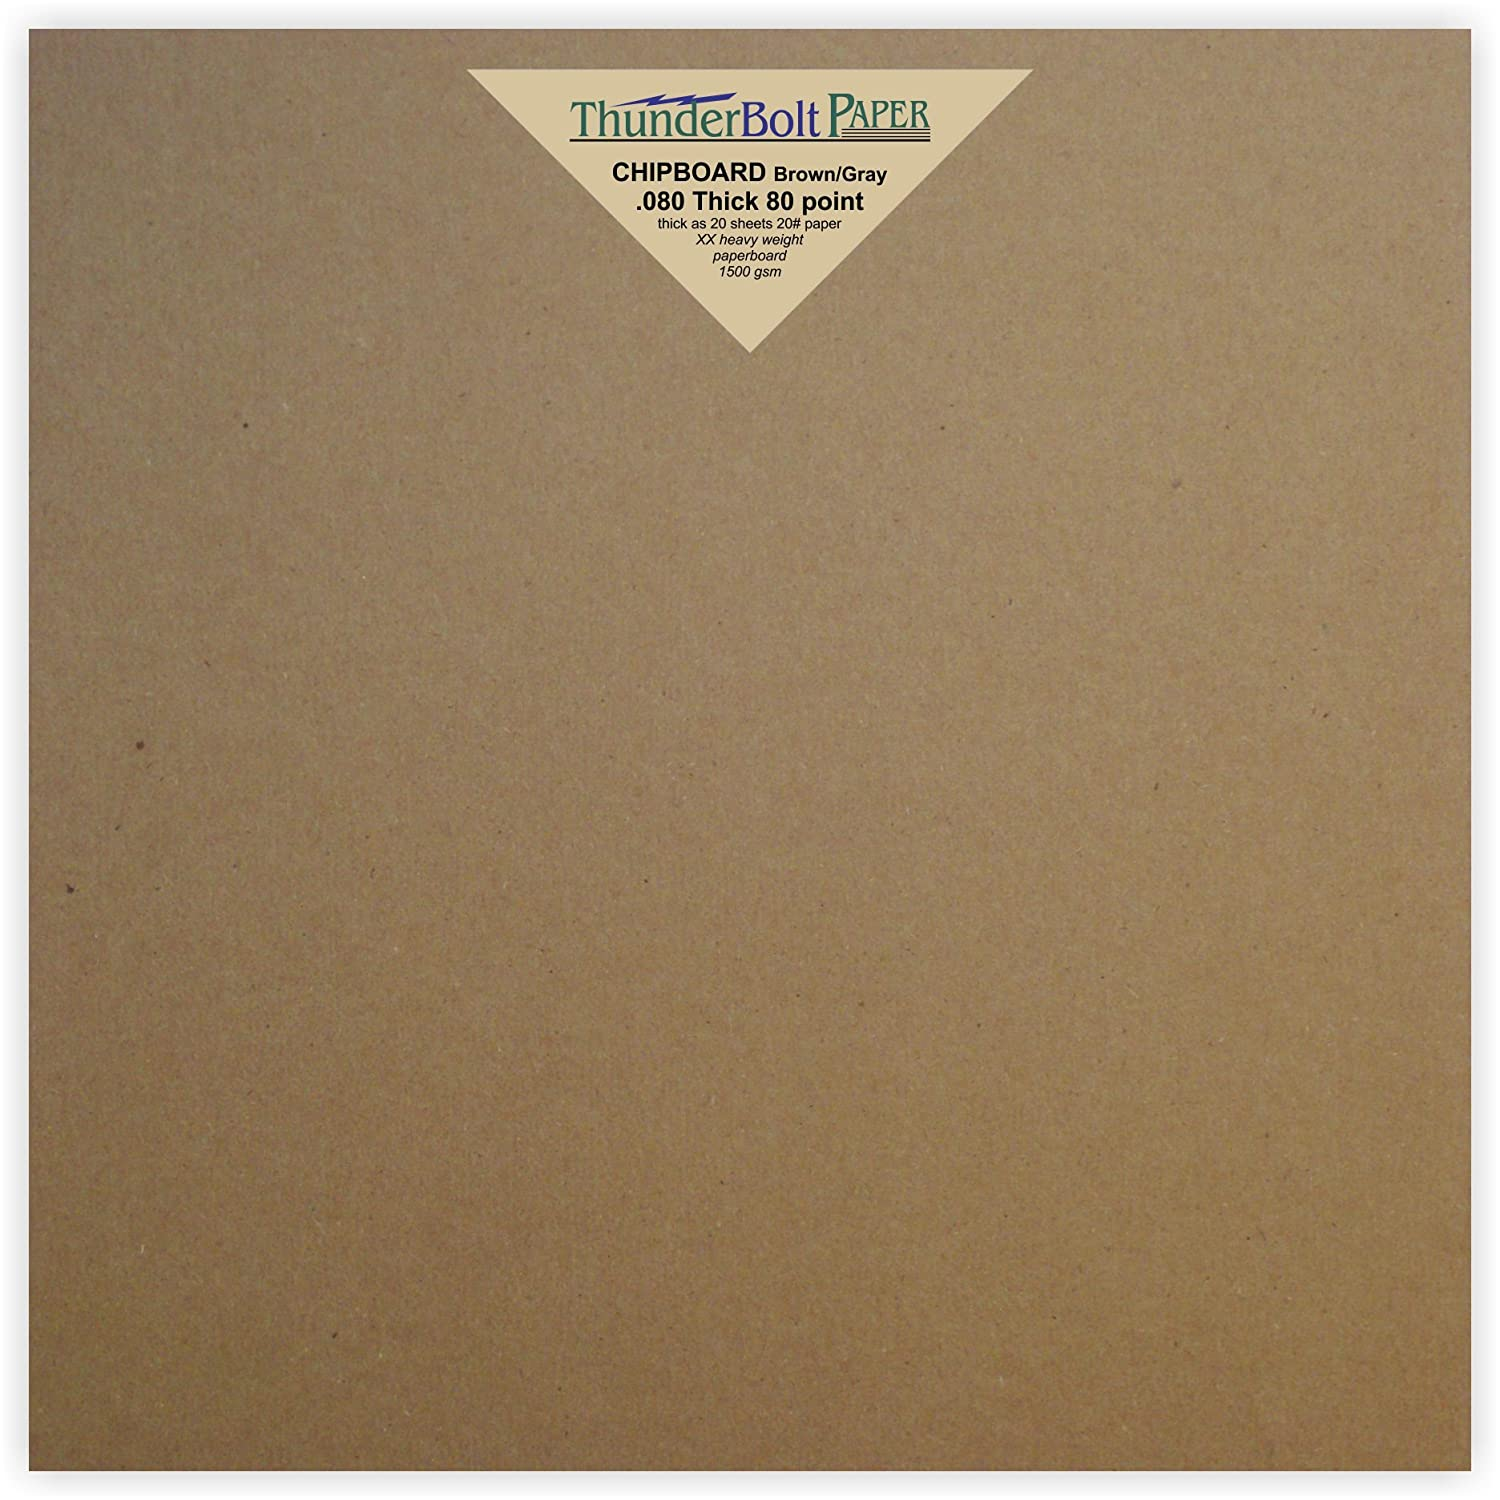 10 Sheets Brown Chipboard 80 Point Extra Thick 8 X 8 Inches Album|Scrapbook Size .080 Caliper XX Heavy Cardboard as Thick as 20 Sheets 20# Paper TBP